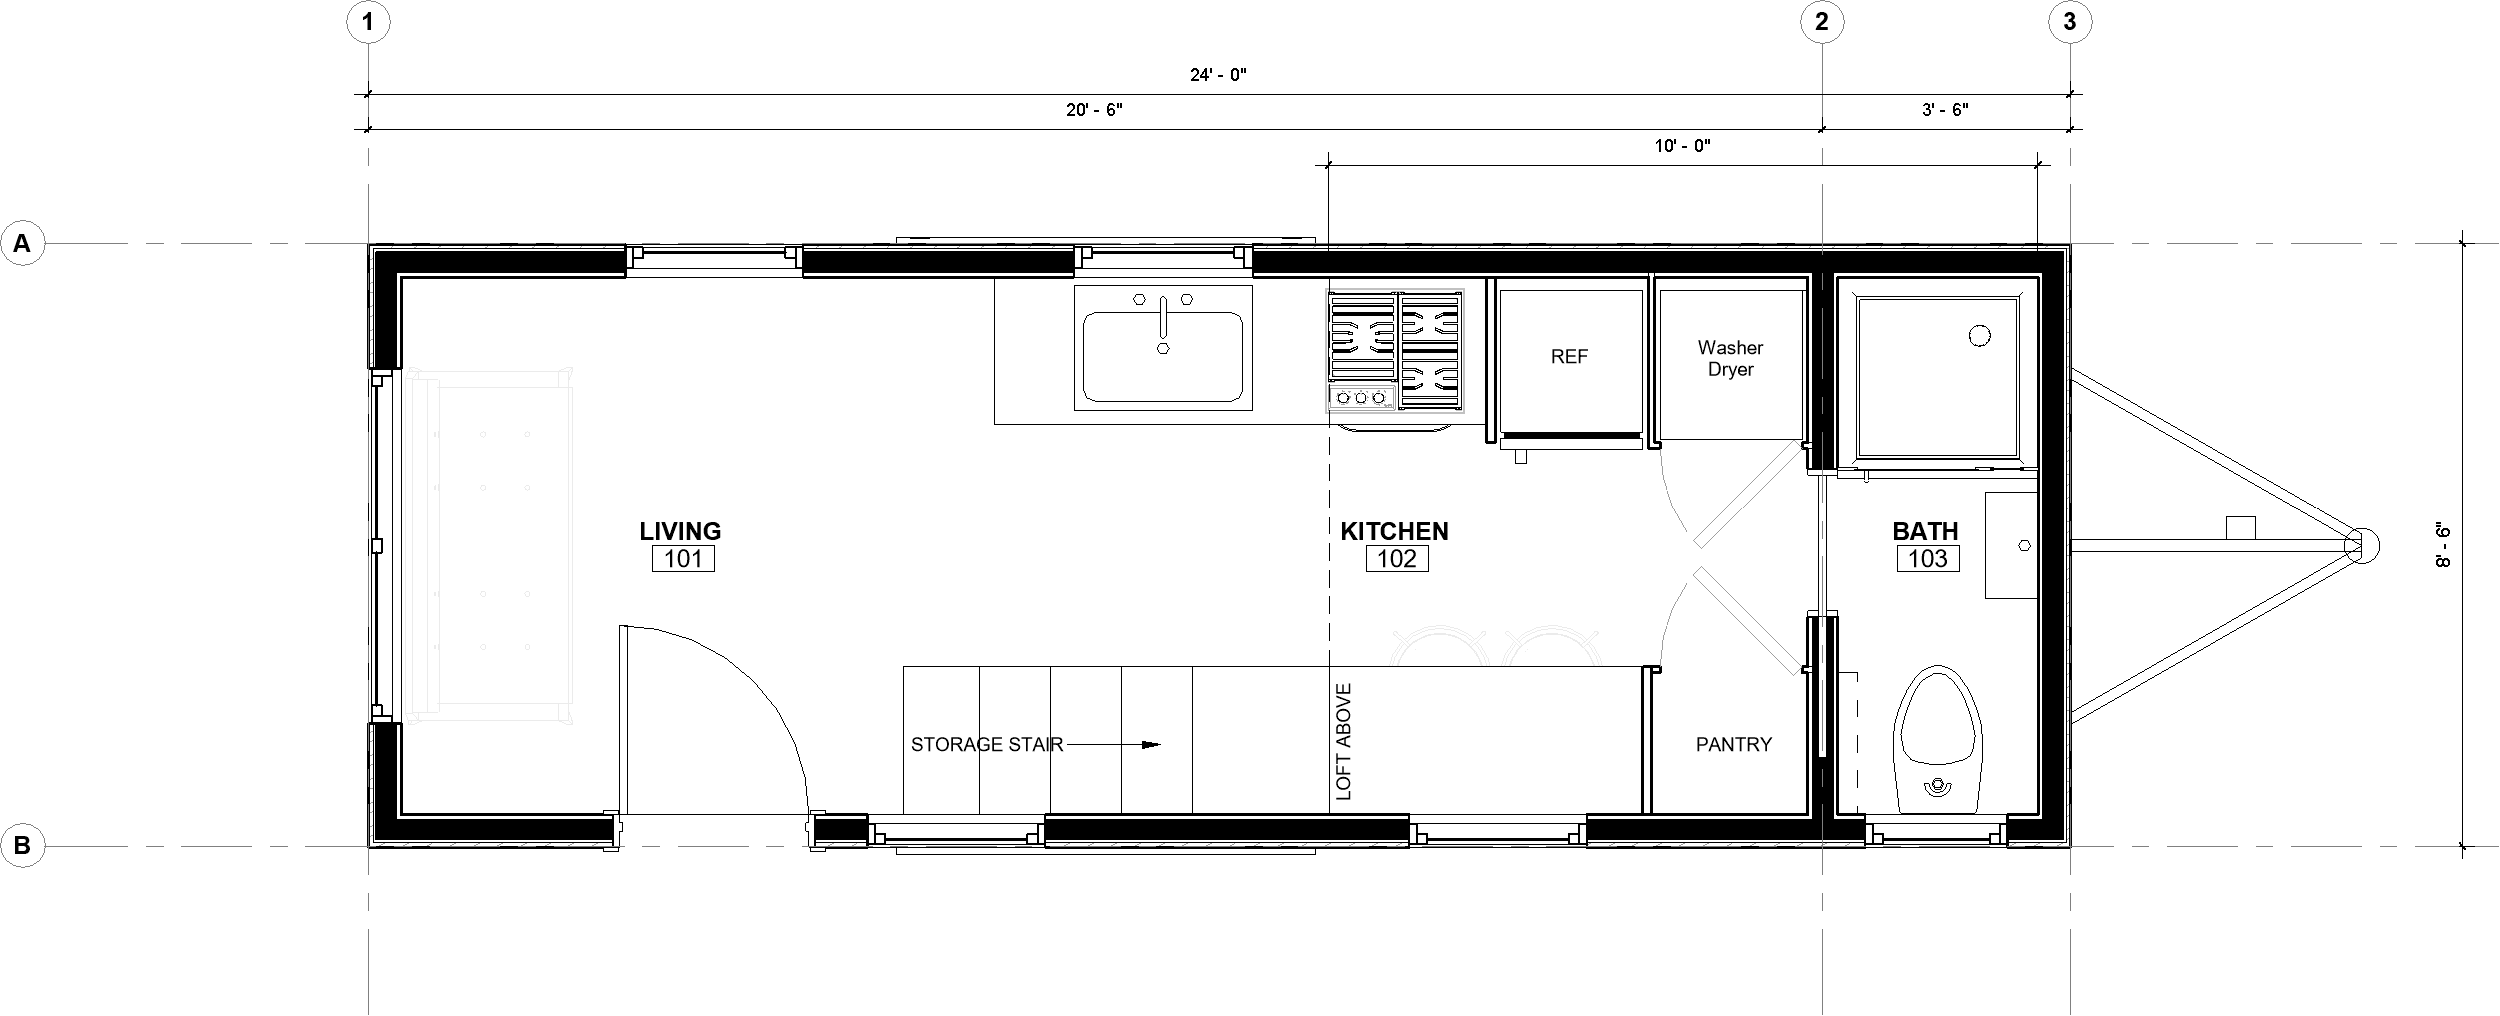 24ft Toccoa Model with Dimensions